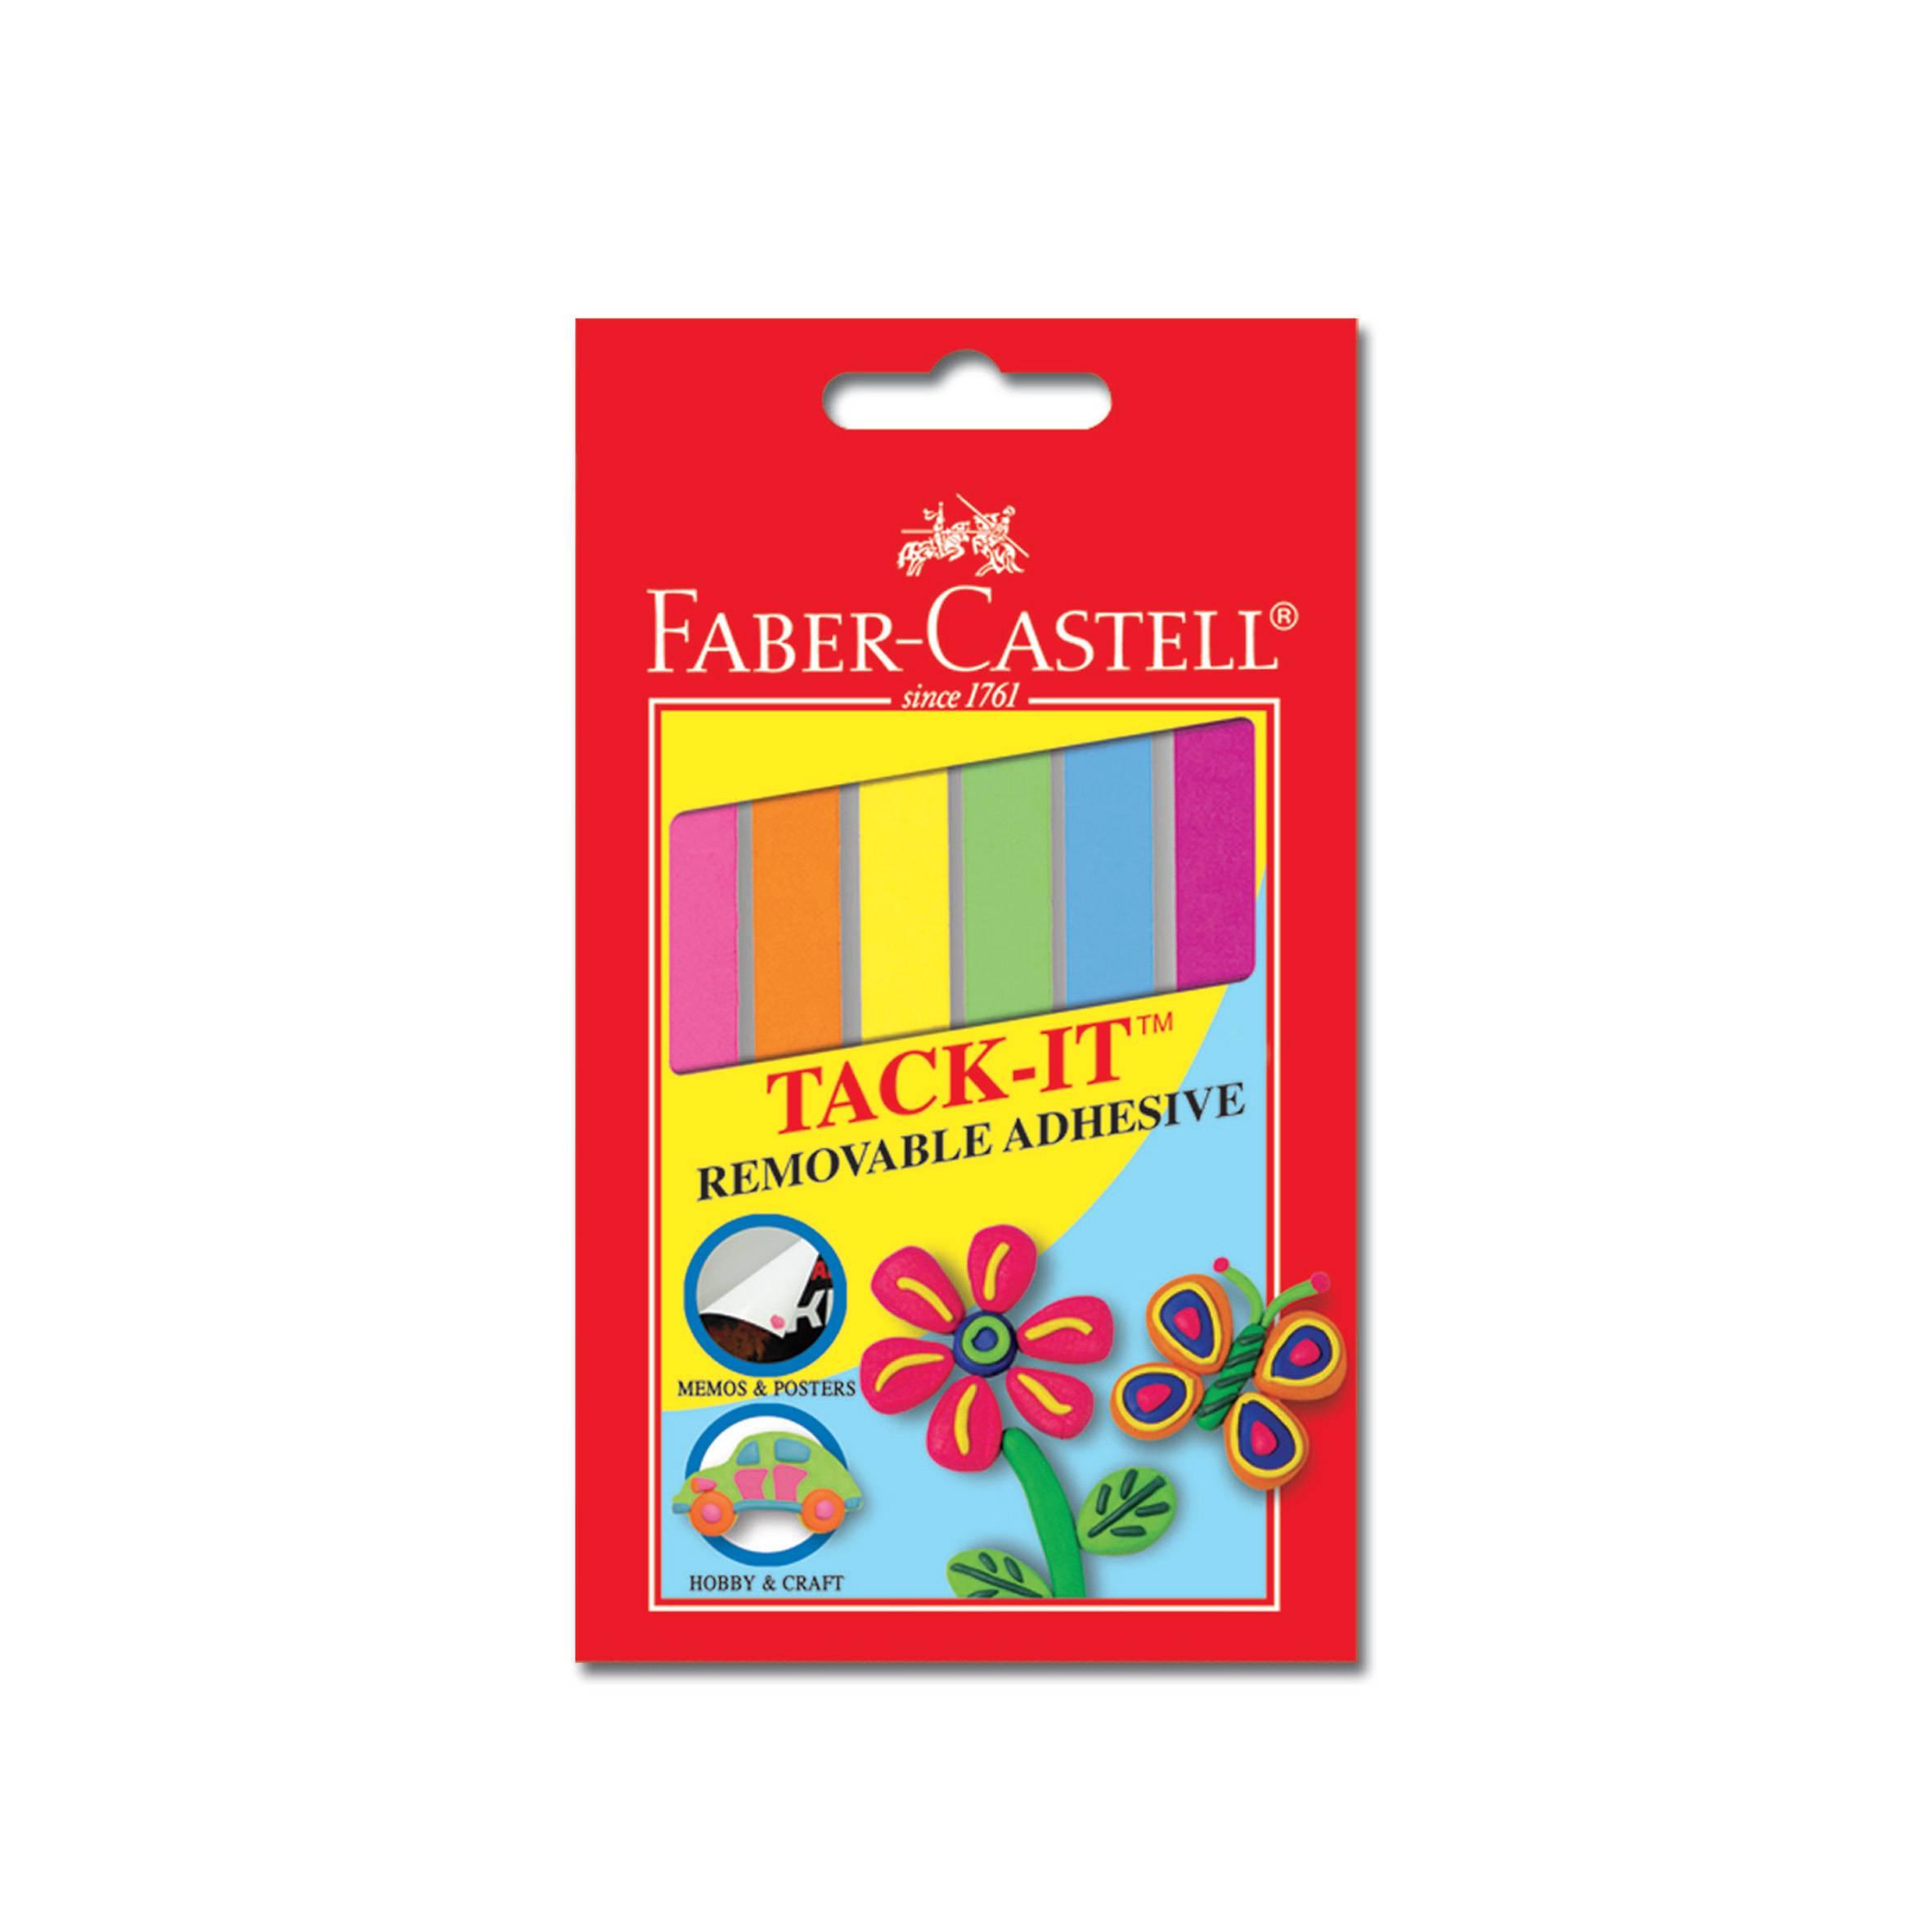 FABER CASTELL TACK IT 50 GR CREATIVE